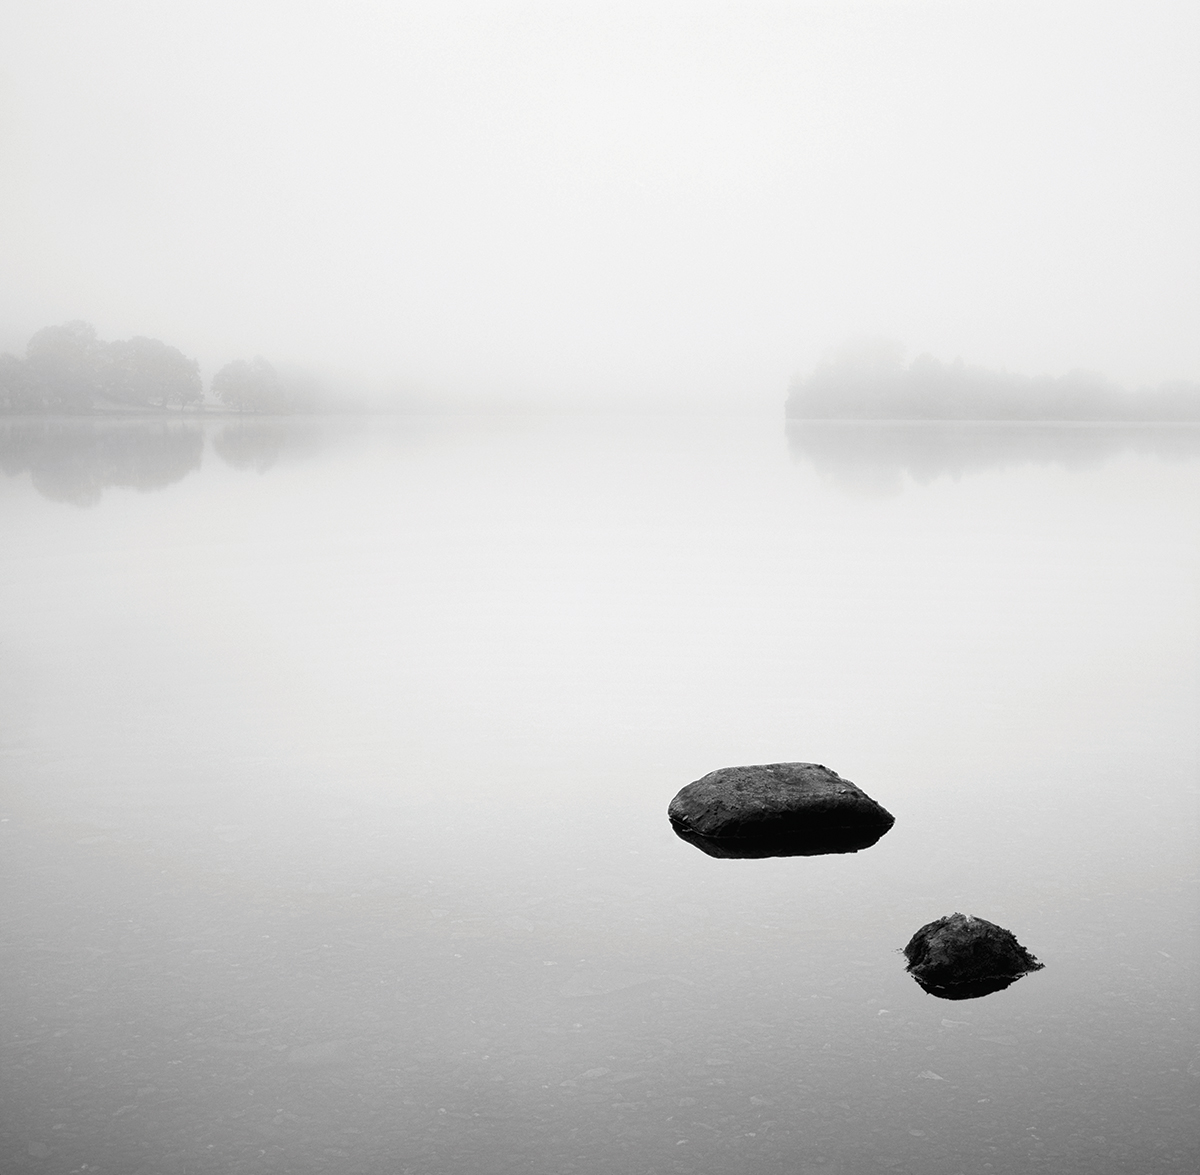 Derwentwater, Lake District. Mist and fog are ideal for minimalist mono images. Canon EOS 5D Mk II, 24-70mm, 1/250sec @ f/8, ISO 400